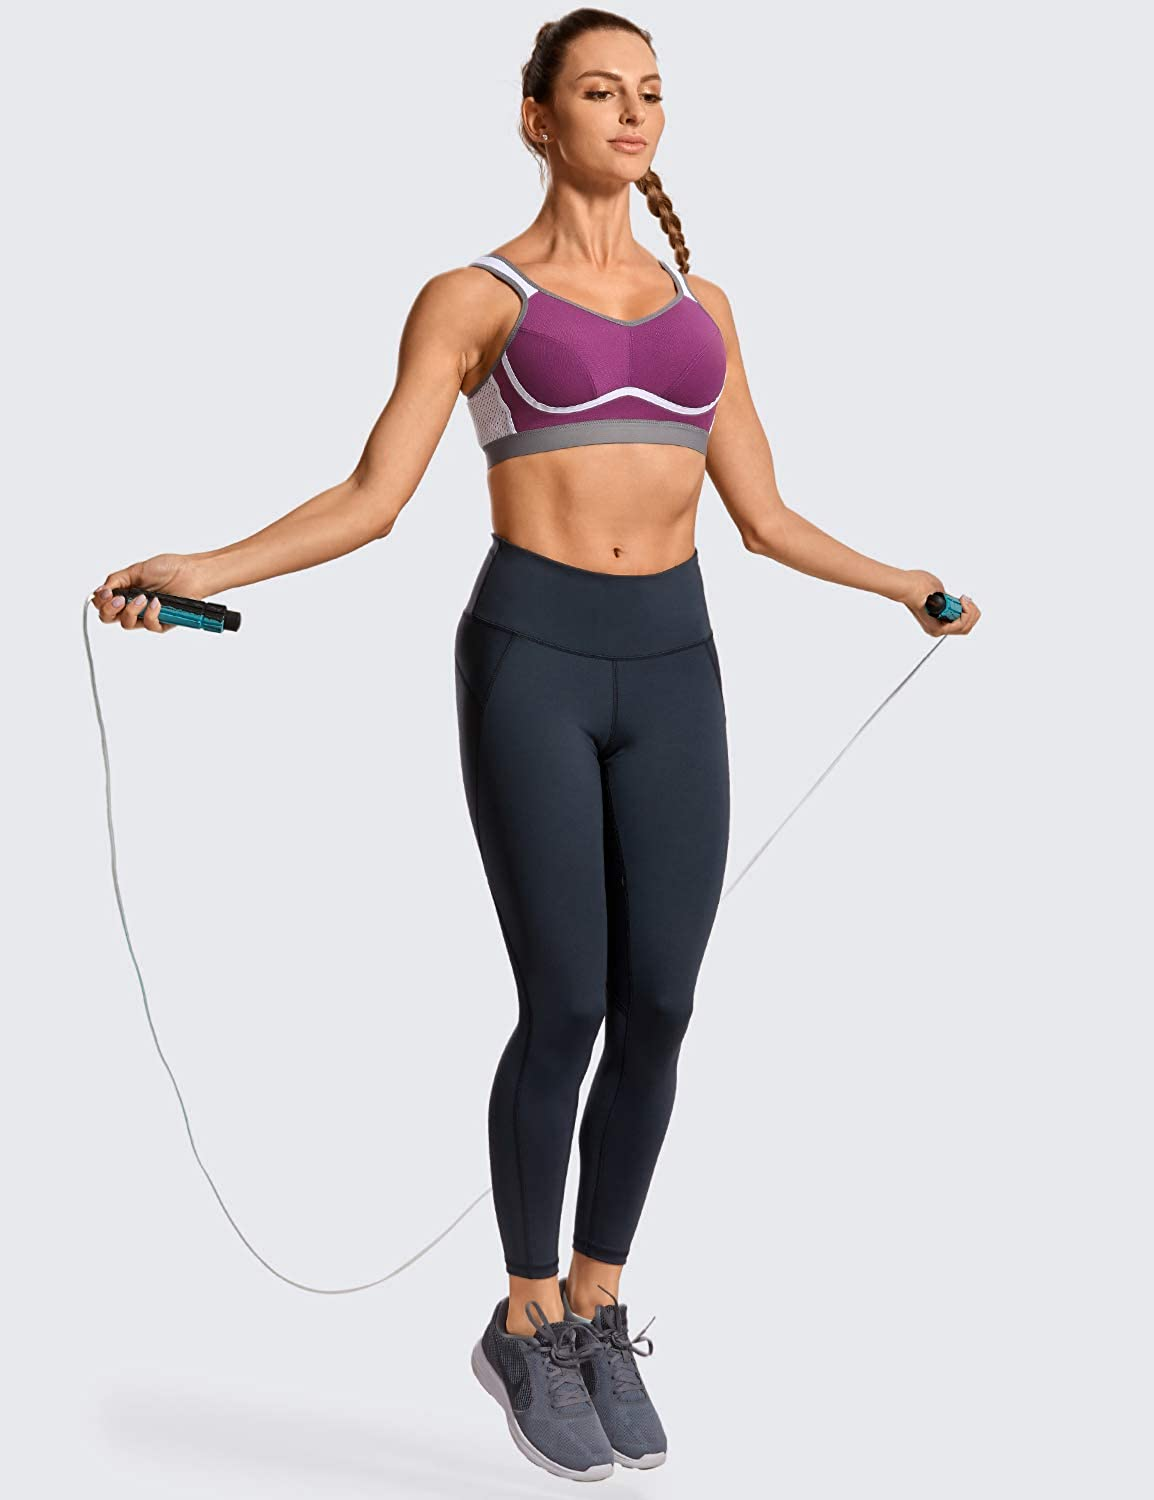 SYROKAN Women's High Impact Support Wirefree Bounce Control Plus Size Workout Sports Bra at  Women's Clothing store